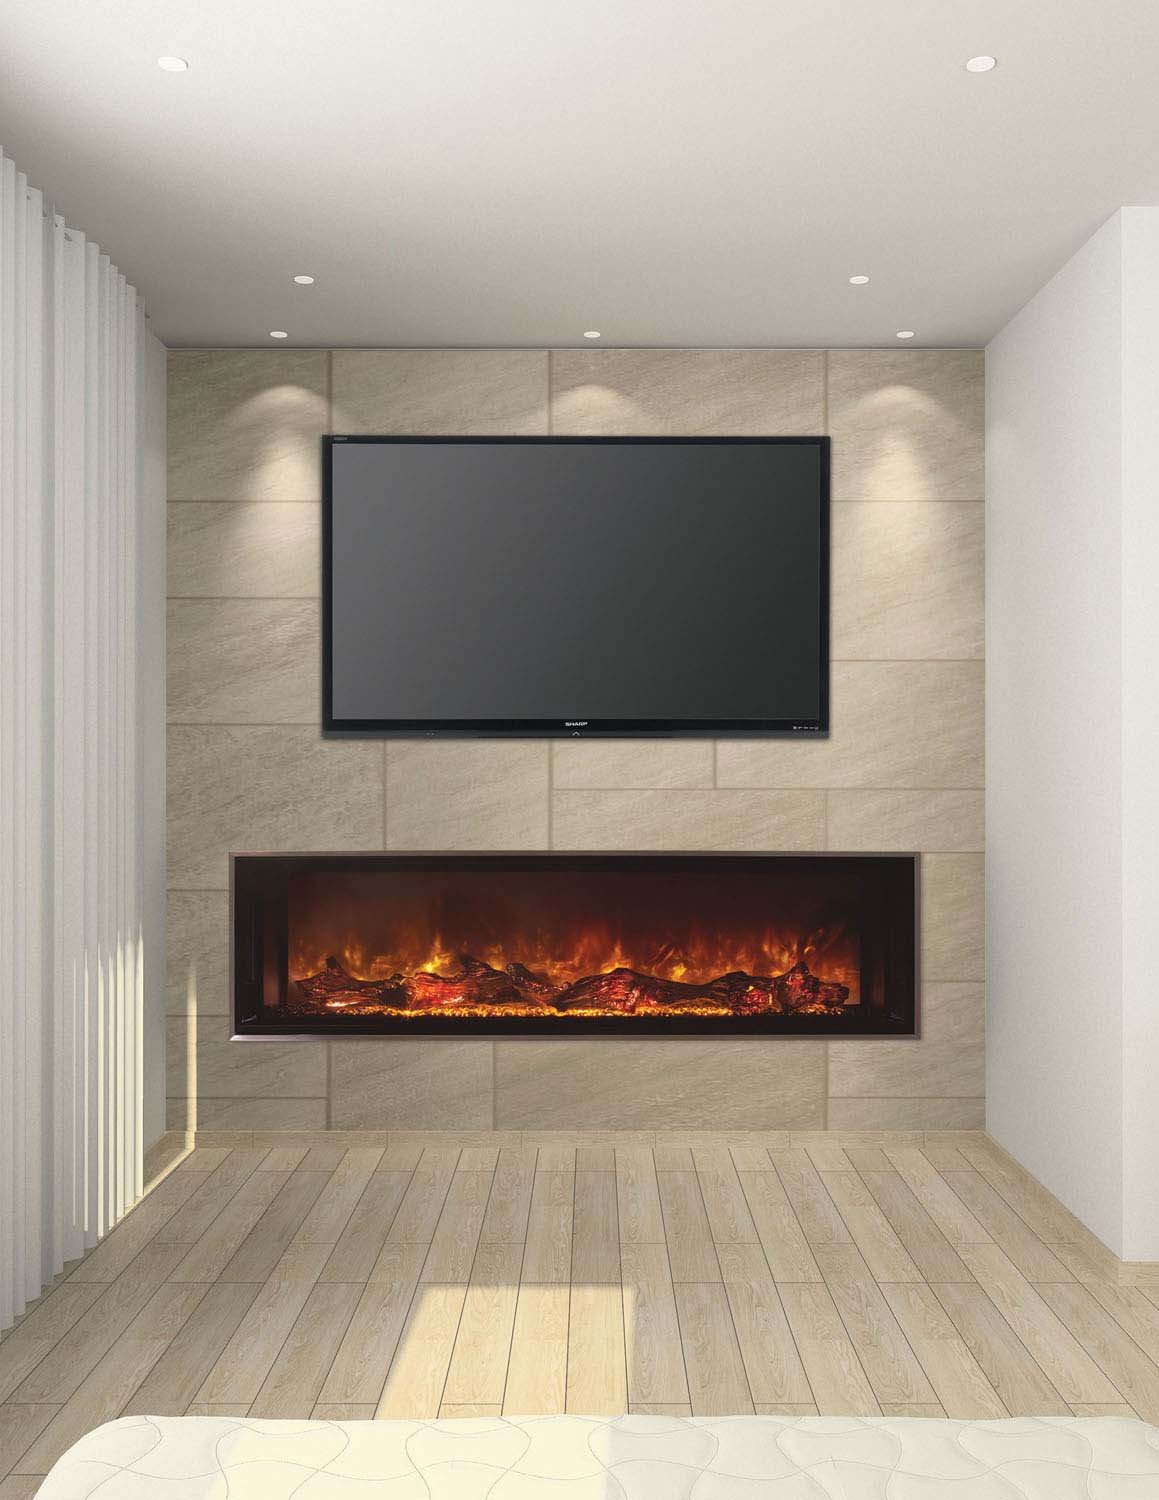 amazon com landscape fullview series electric fireplace size